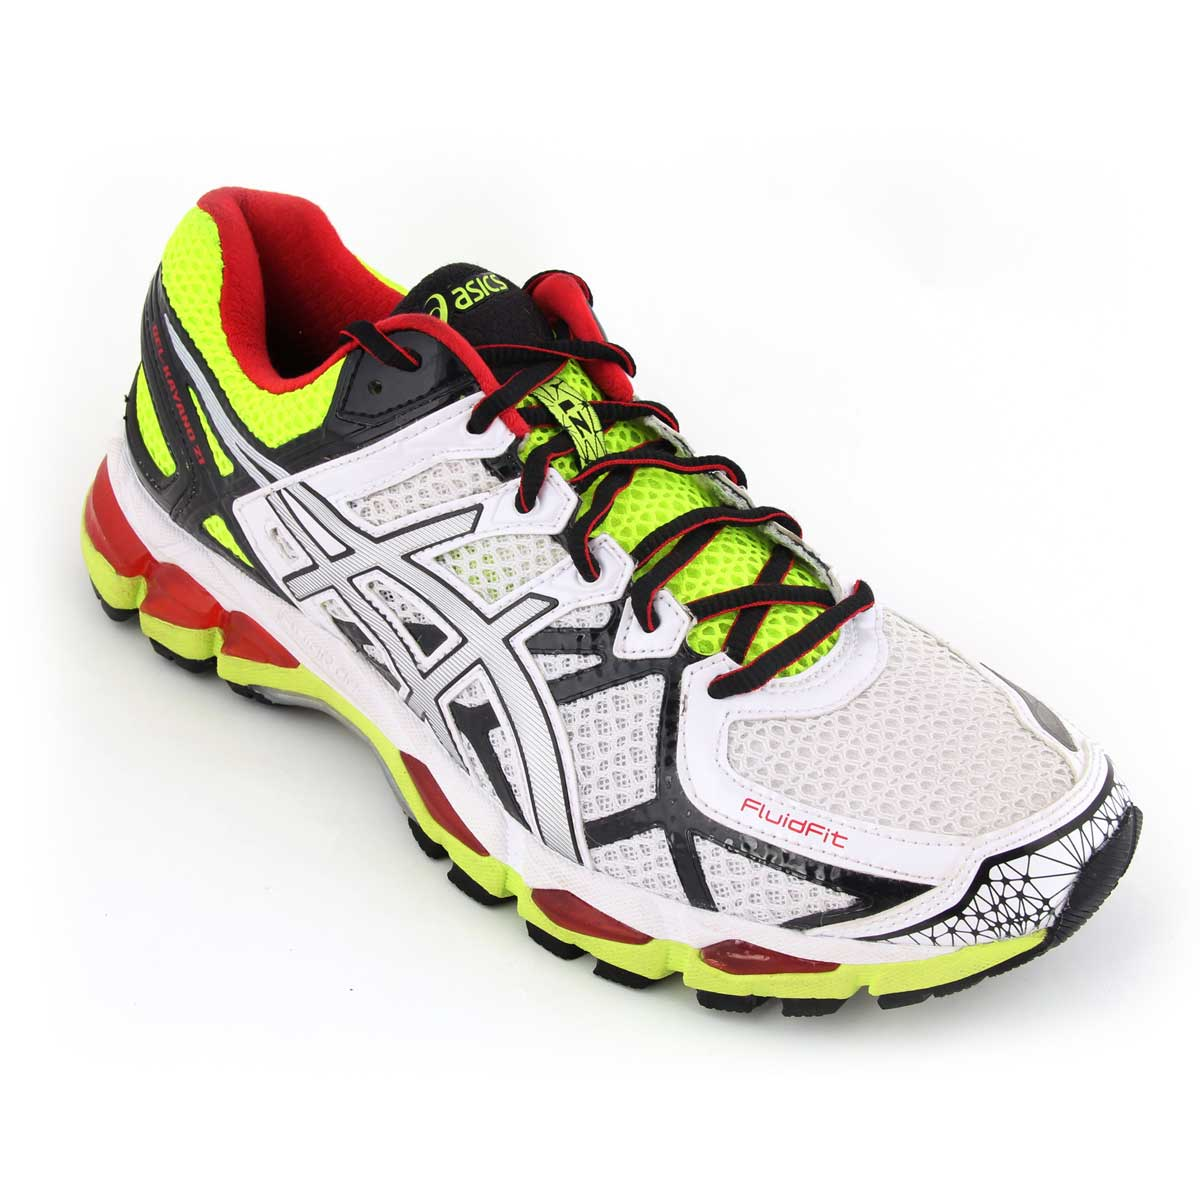 info for 39201 9bba1 Buy Asics Gel-Kayano 21 Men s Running Shoes (Lightning) Online